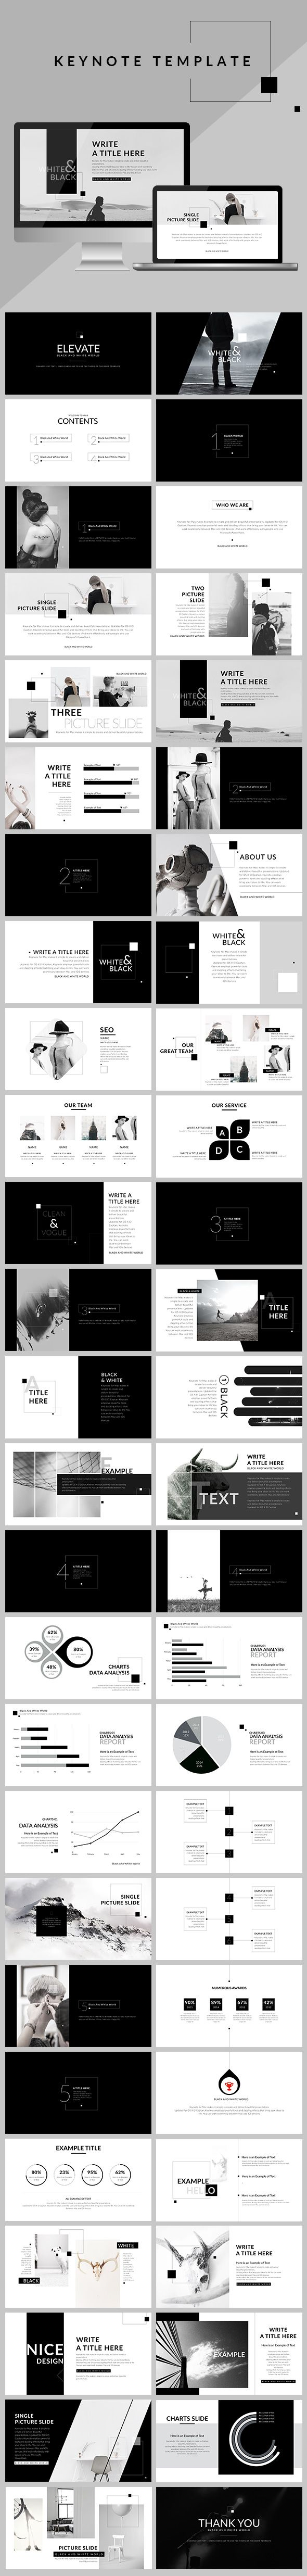 Black & White - Clean Keynote Template - Creative Keynote Templates